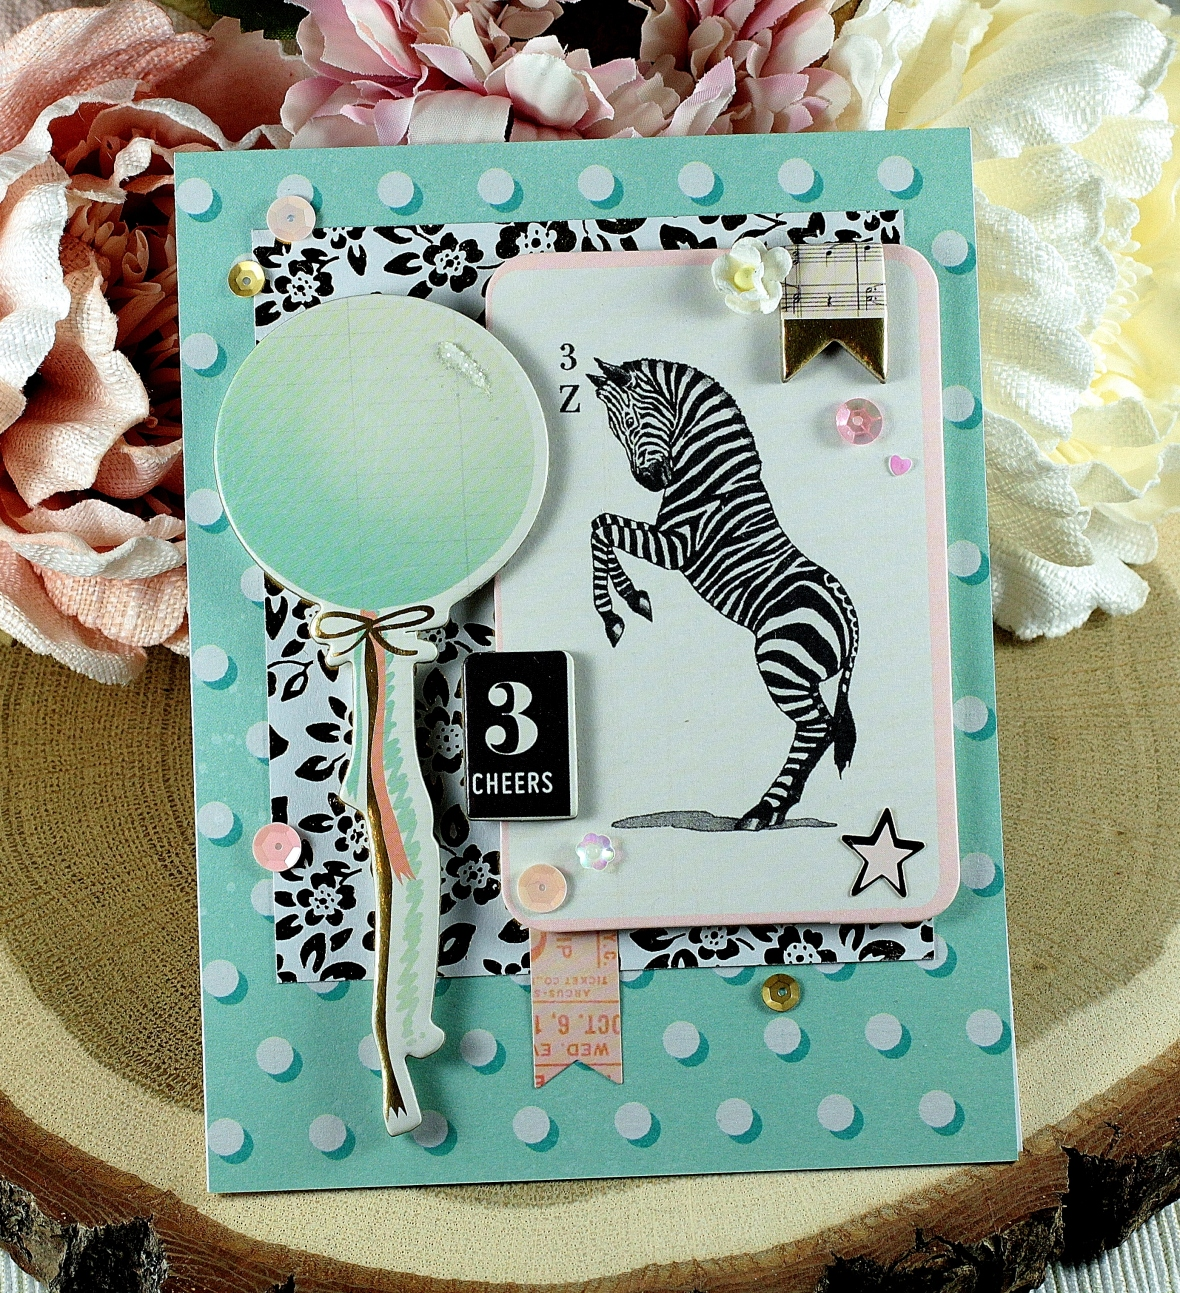 c4c 19 june colours zebra journal card.jpg